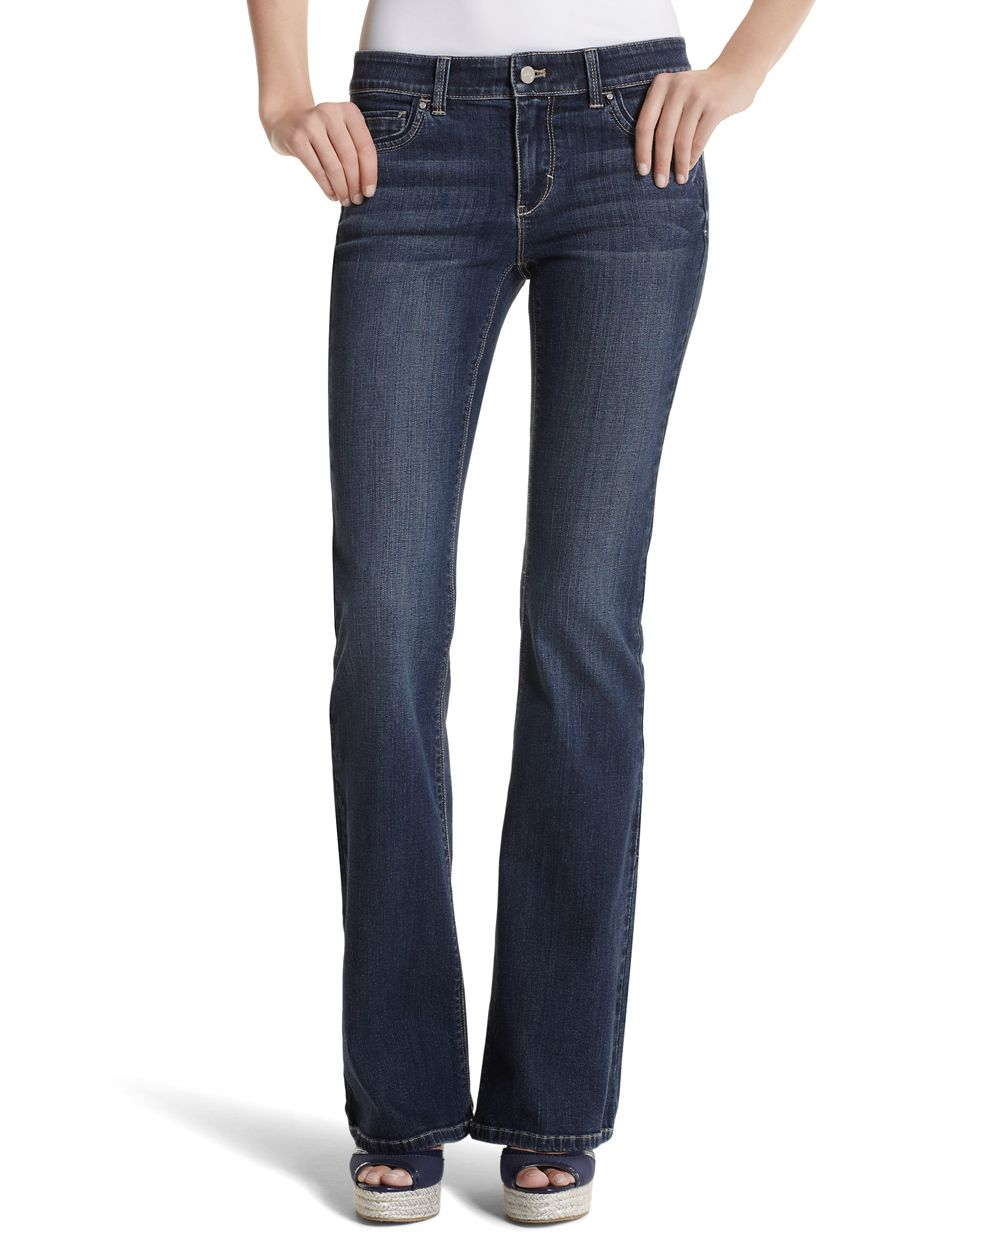 Forum on this topic: Most Comfortable Jeans For Women, most-comfortable-jeans-for-women/